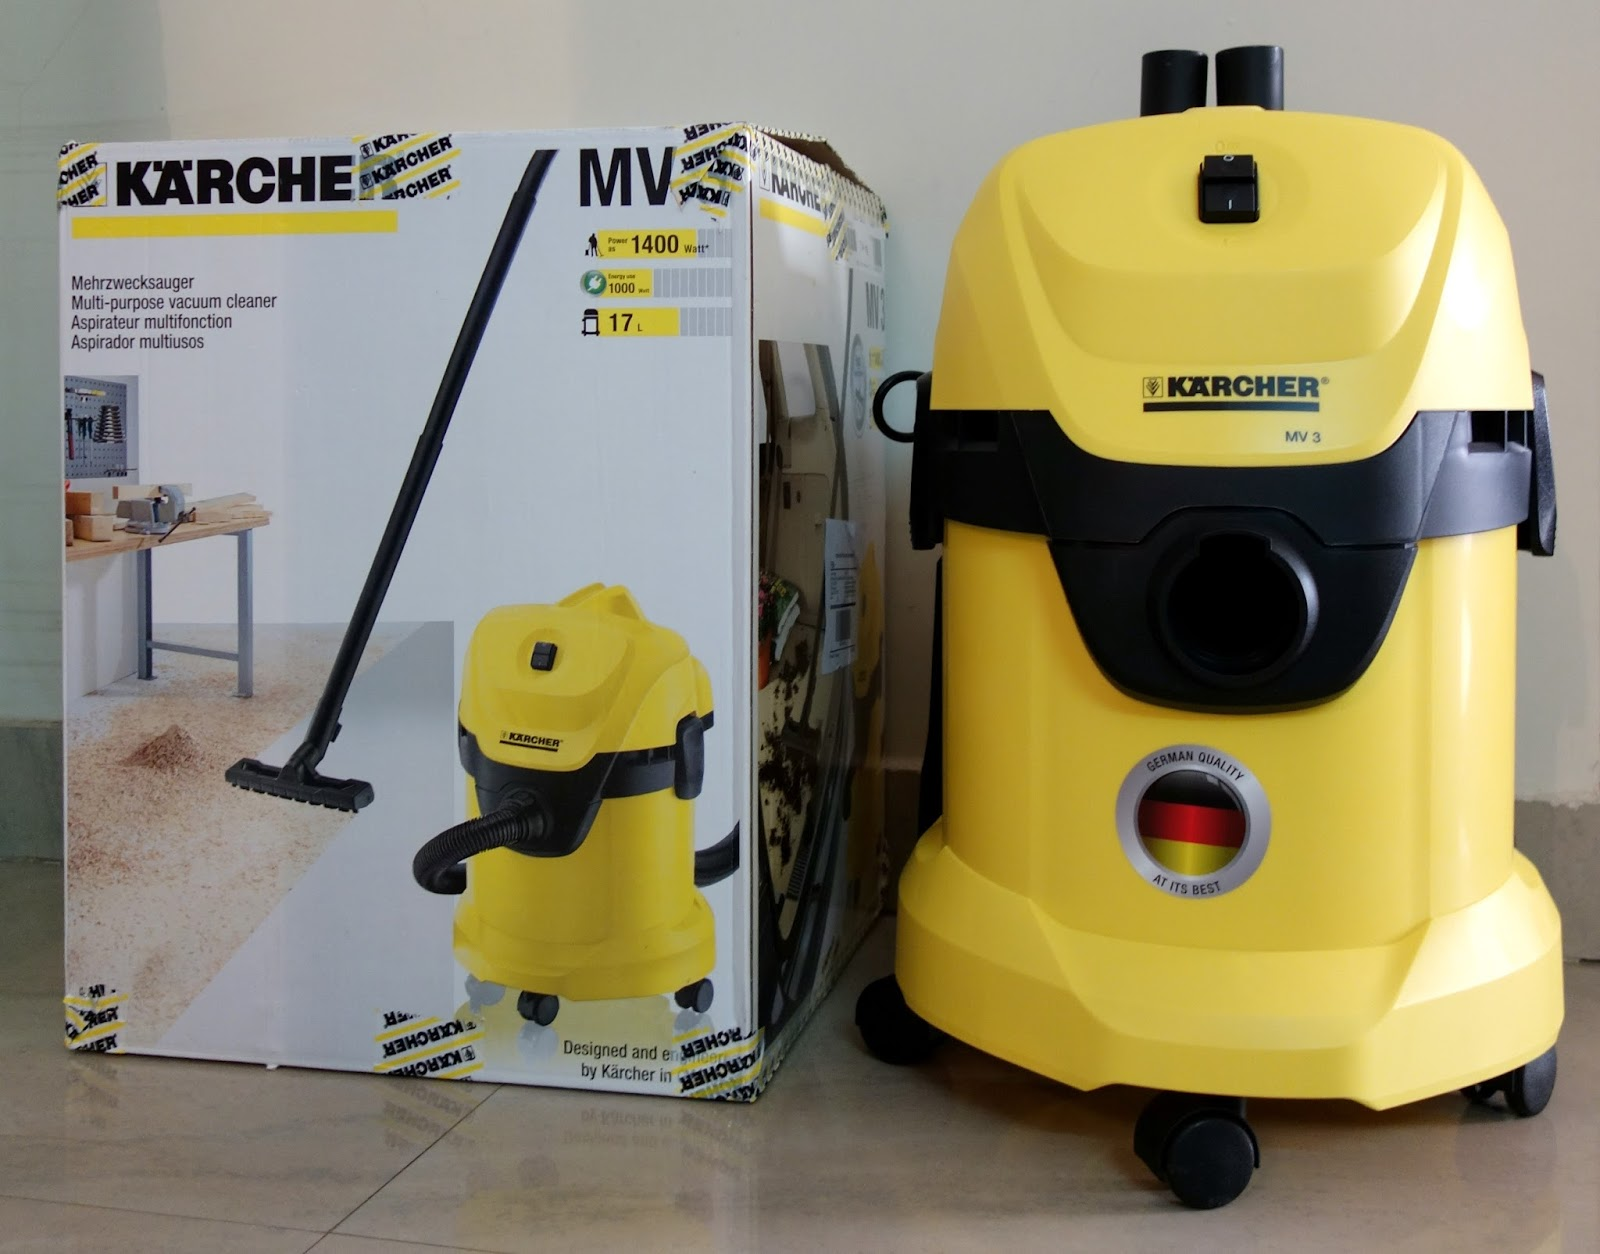 karcher mv3 vacuum cleaner review do the diy. Black Bedroom Furniture Sets. Home Design Ideas